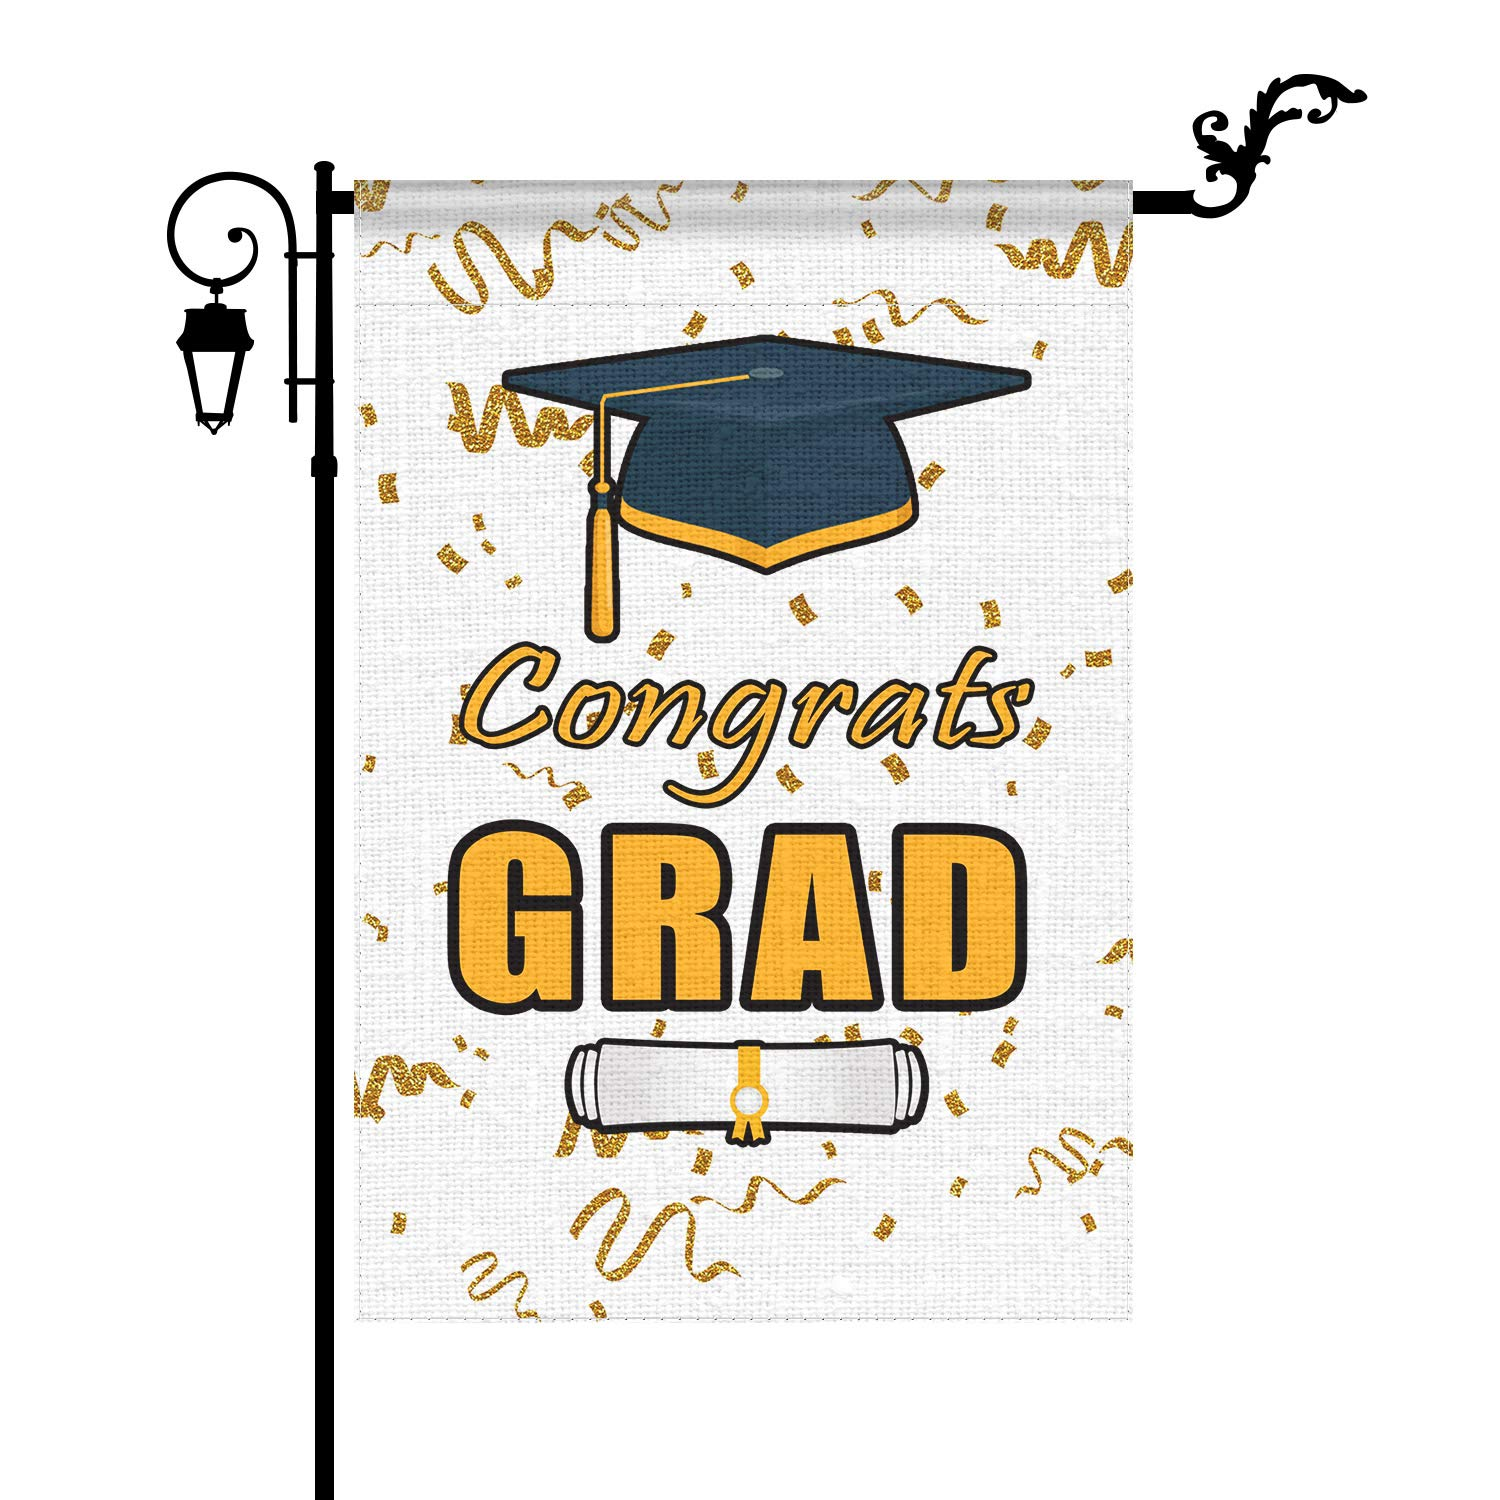 YIWANDA Graduation Garden Flag, Congrats Grad Congratulations Yard Flags 12.5x18 inch Double Sided, Burlap Celebrate Class of 2021 Diploma Cap Vertical Signs Banners Gifts Outdoor Decorations Decor